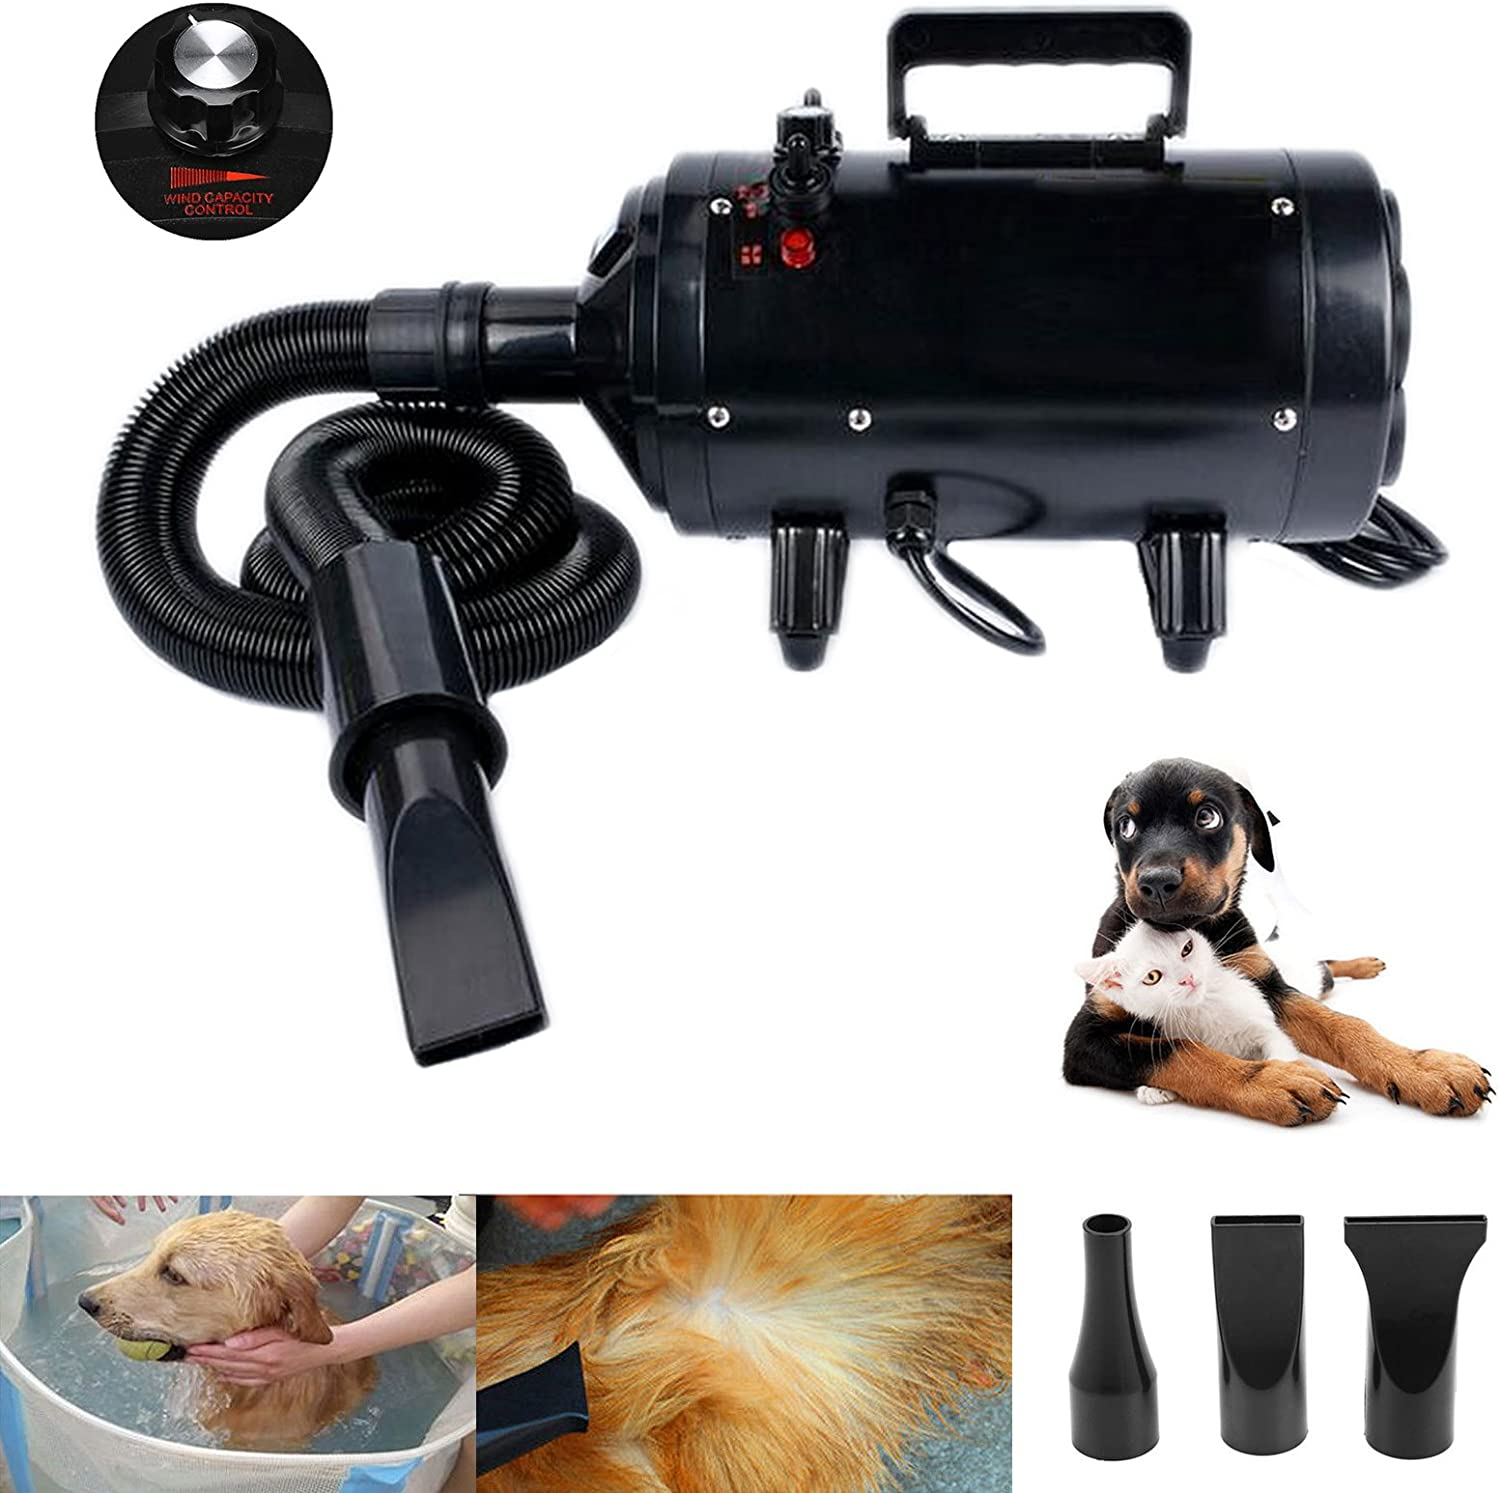 Dicn Dog Cat Pet Hairdryer Powerful Blaster High Velocity Hair Dryer Gear Stepless Variable Speed Temperature Control Professional Blower Heater, Black 3 Nozzles 2.5M Flexible Hose